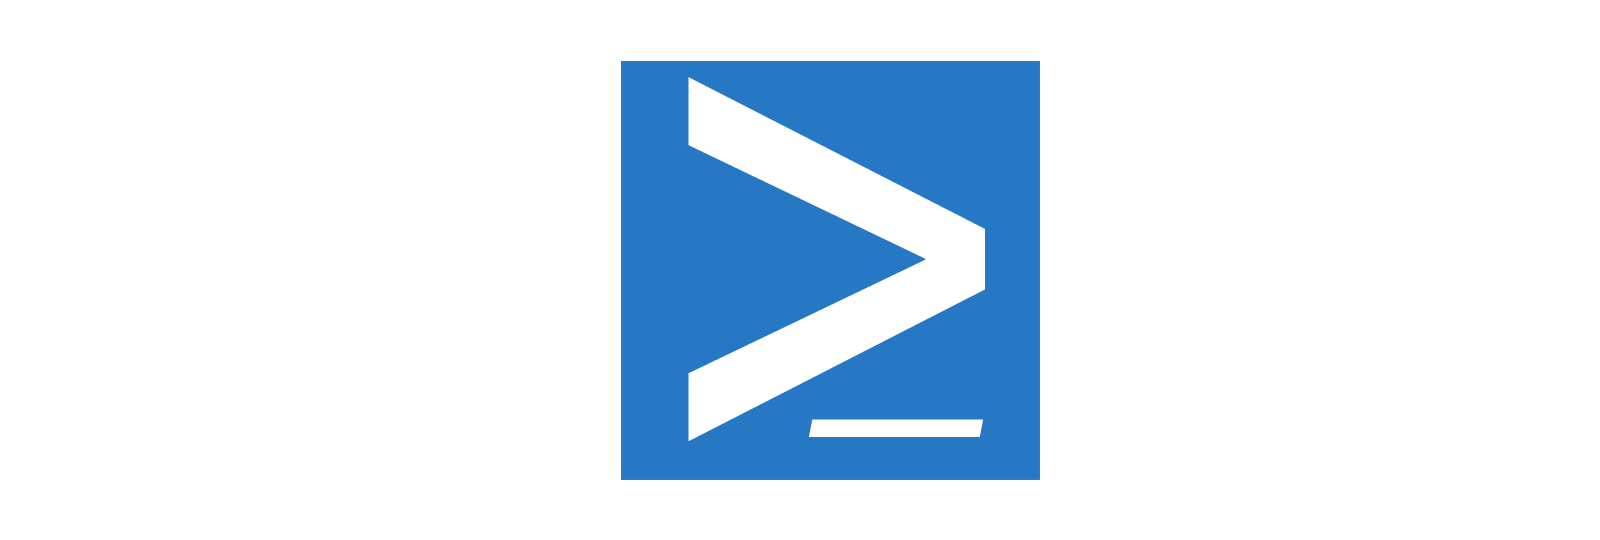 RunningLow - PowerShell script to check for disk space and